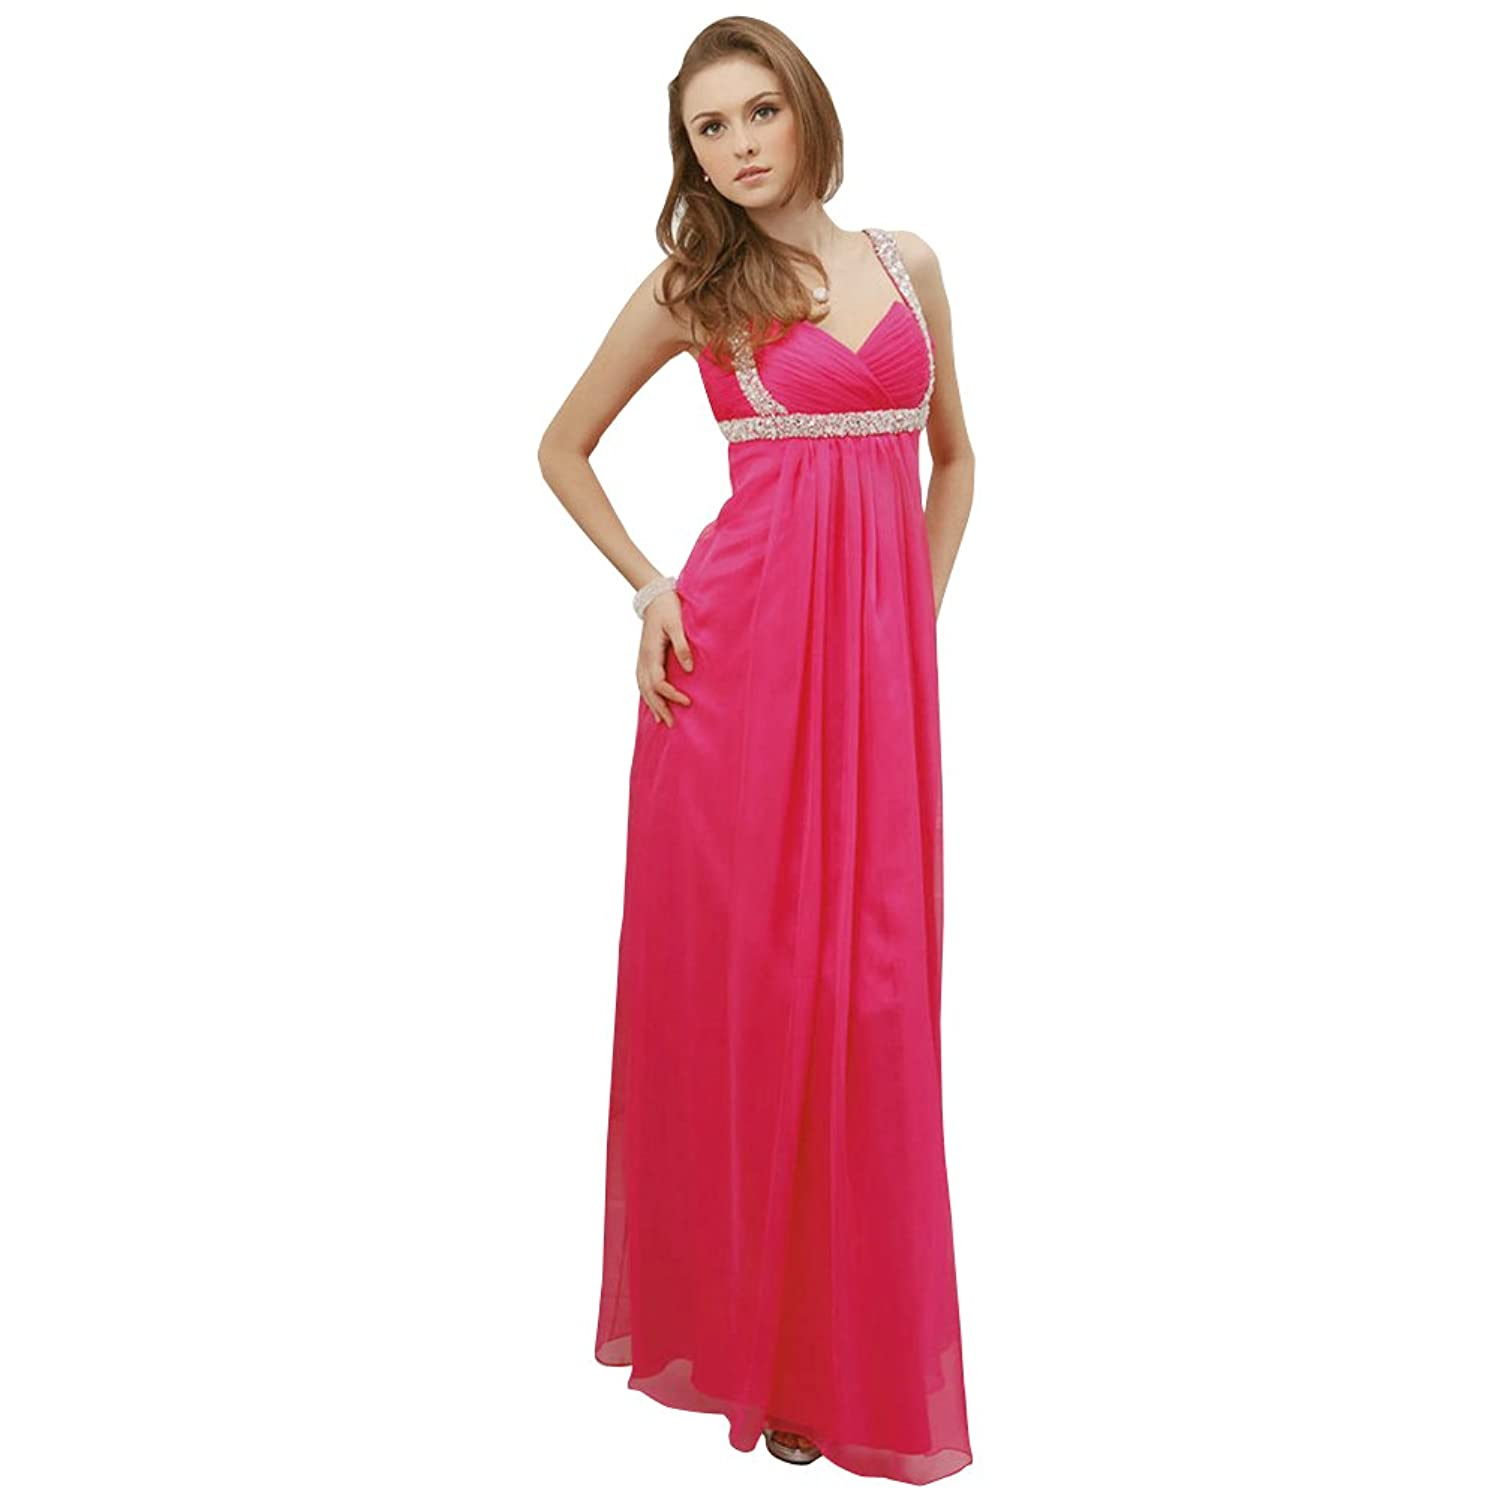 GEORGE BRIDE Sheath/Column One Shoulder Floor Length Chiffon Evening Dress With Beaded Appliques